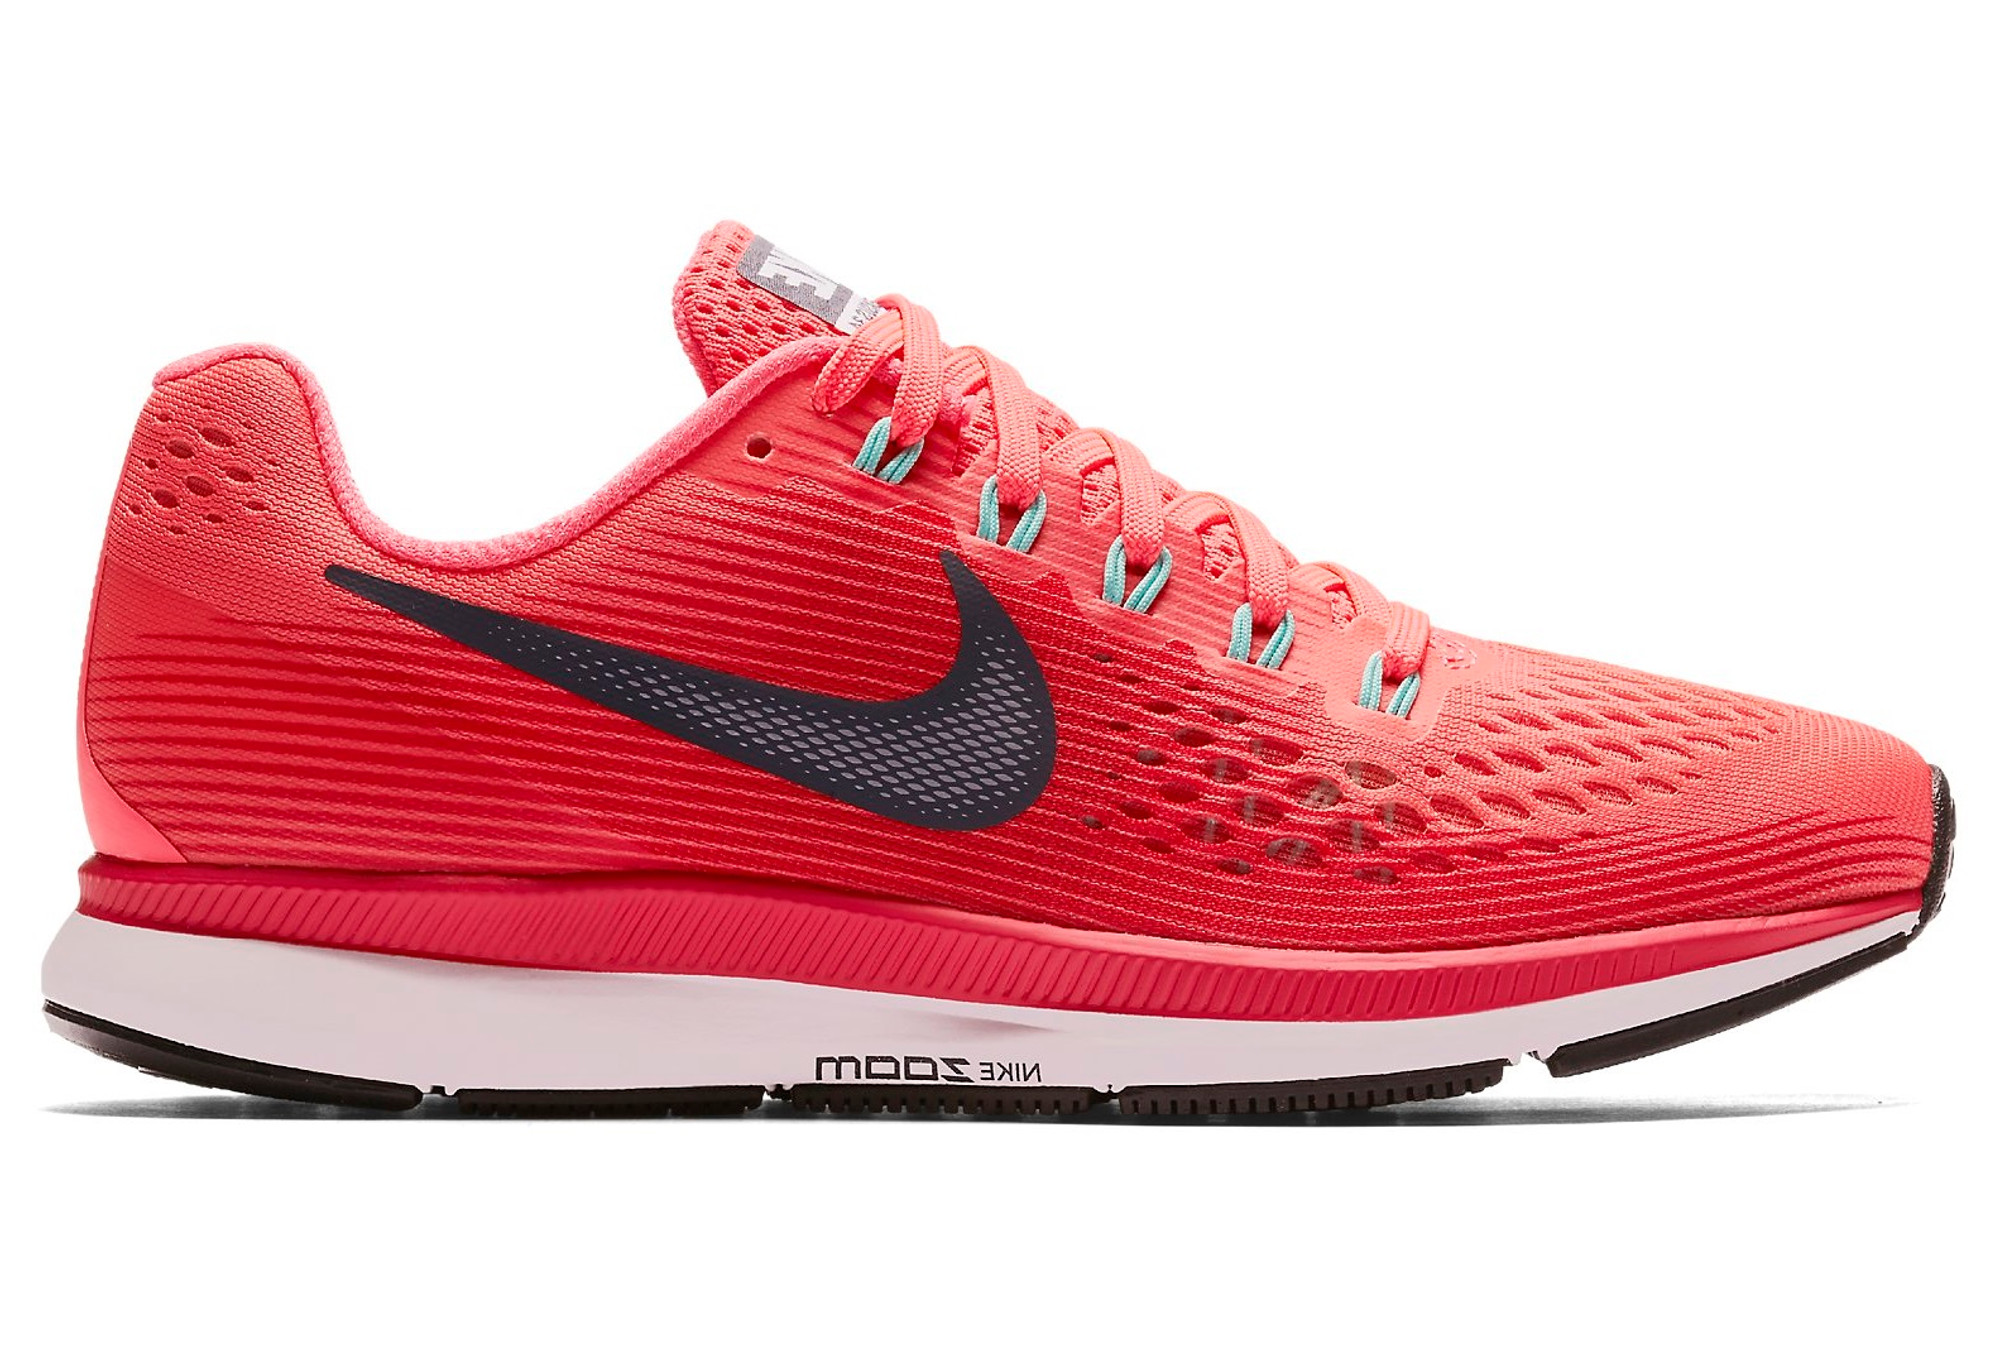 huge selection of ae21a 9a292 Chaussures de Running Femme Nike Air Zoom Pegasus 34 Rouge